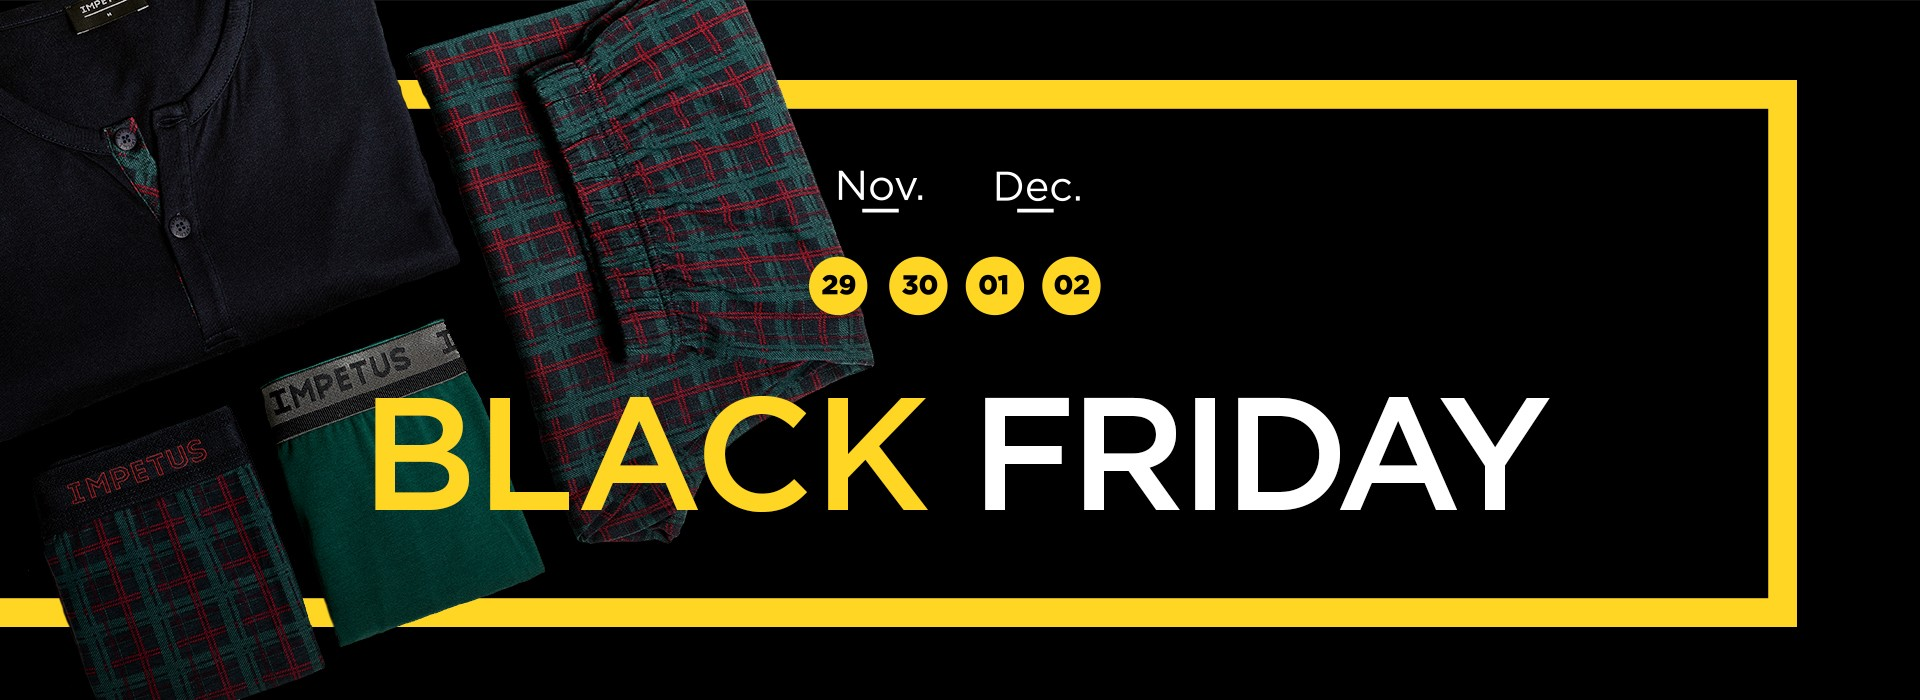 black_friday_impetus_underwear_undergarment_pajamas_sleepover_men